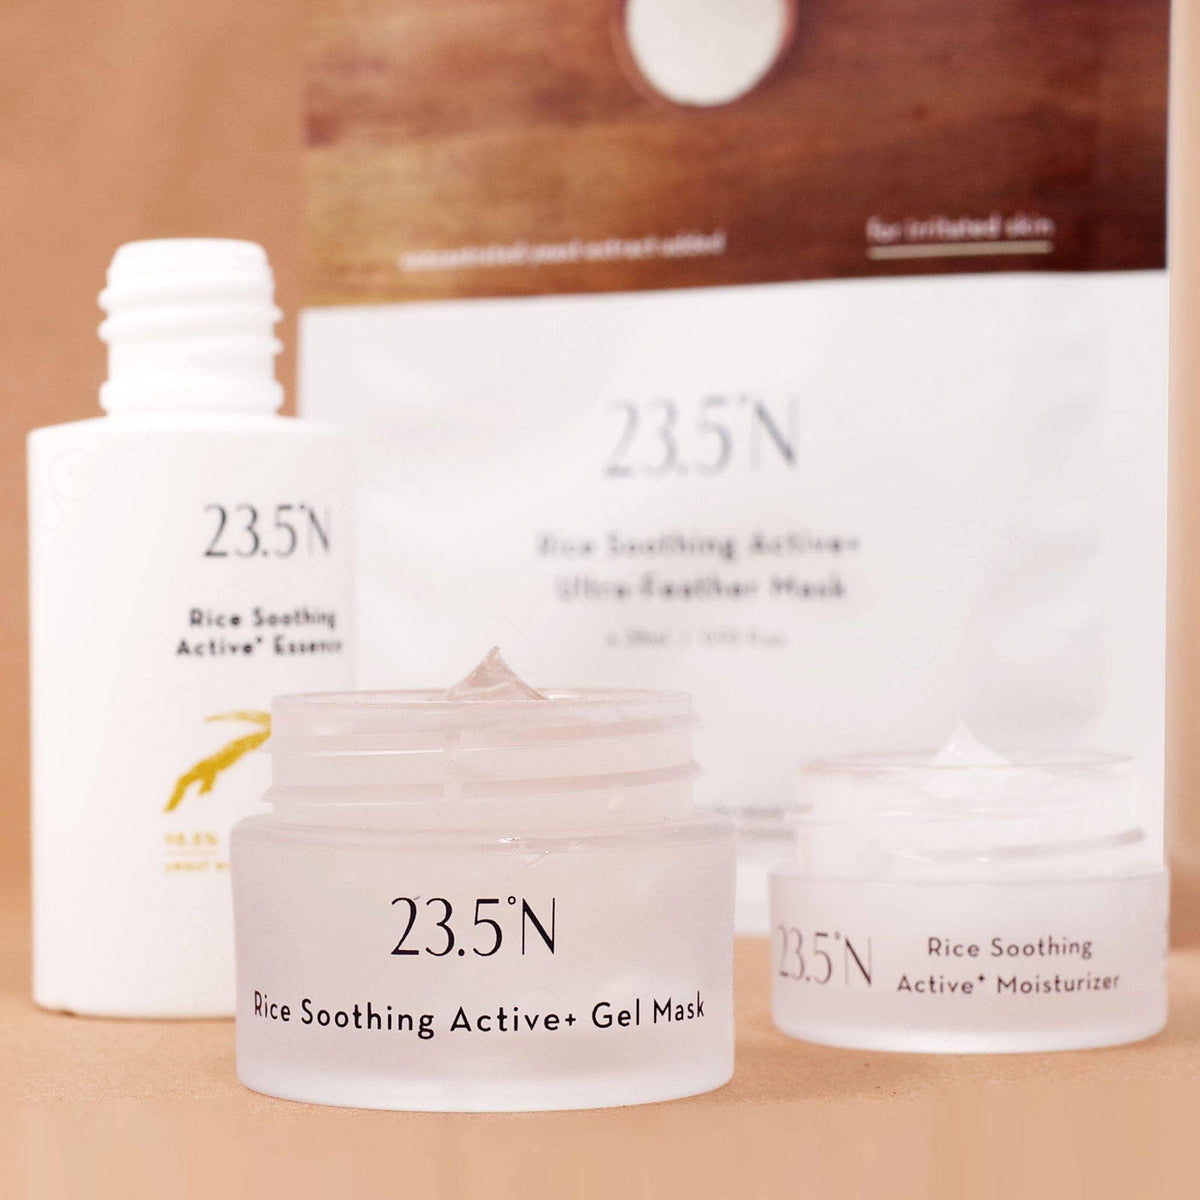 23.5°N Rice Soothing Active+ Sampler Set